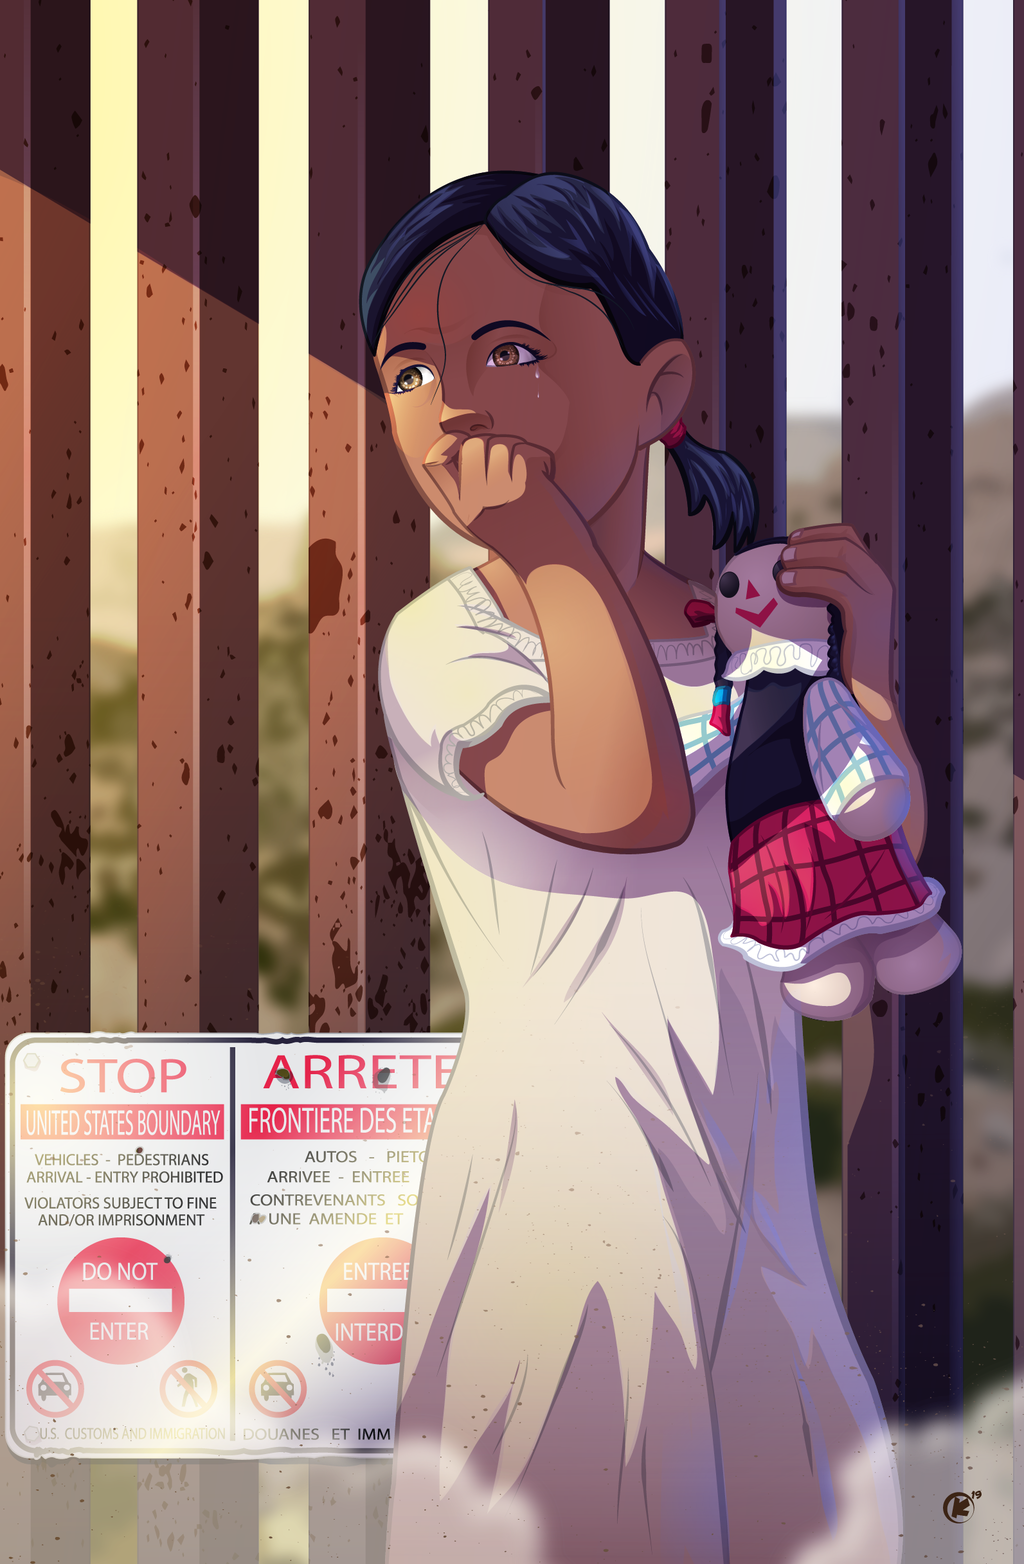 A young migrant girl standing outside the border wall of the United States